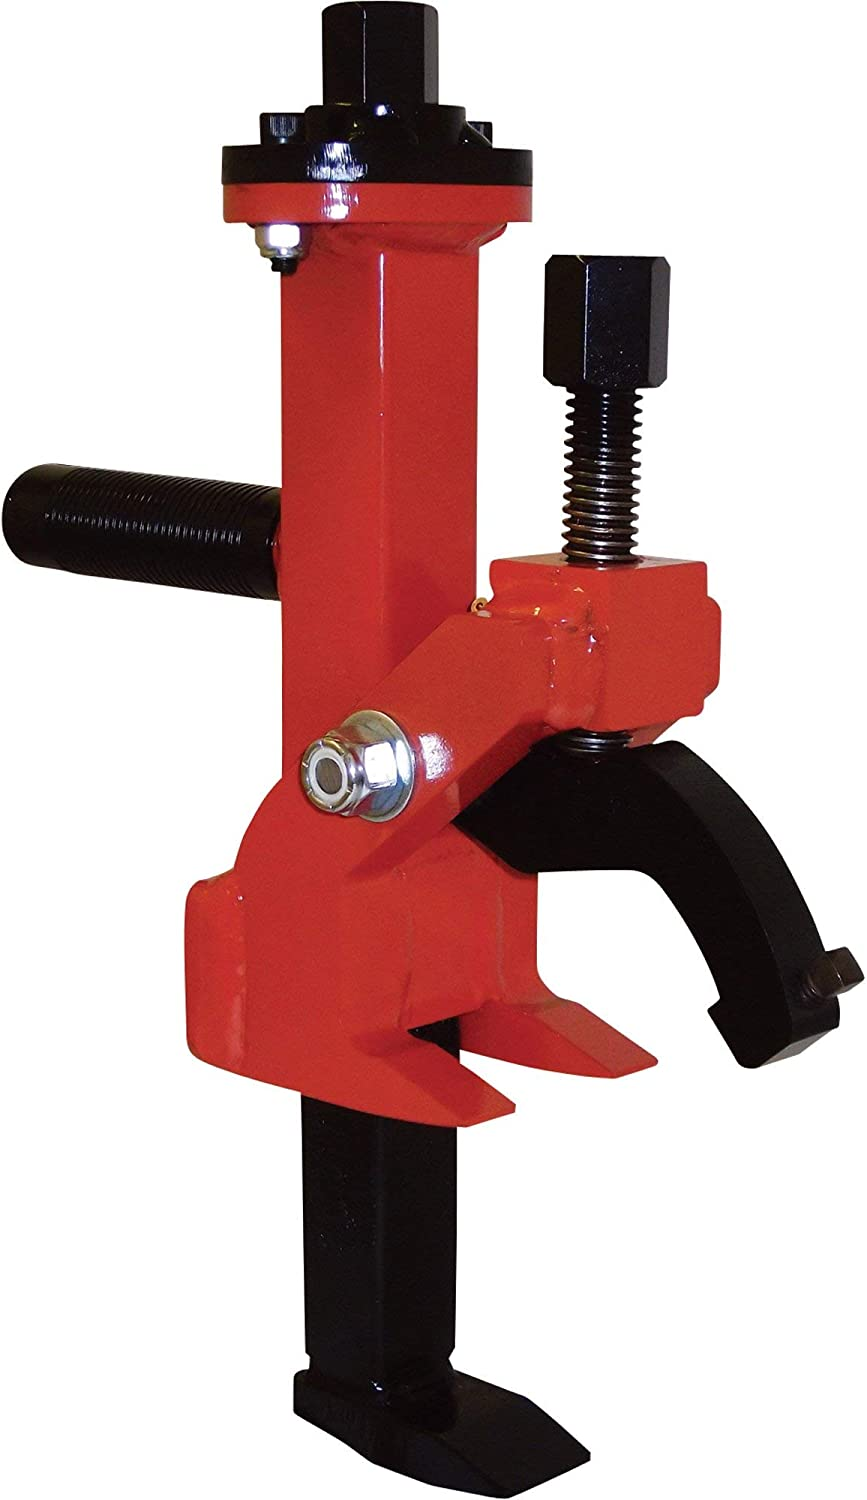 Esco Pneu-Tek Pneumatic Tire Bead Breaker - Model Number 20429